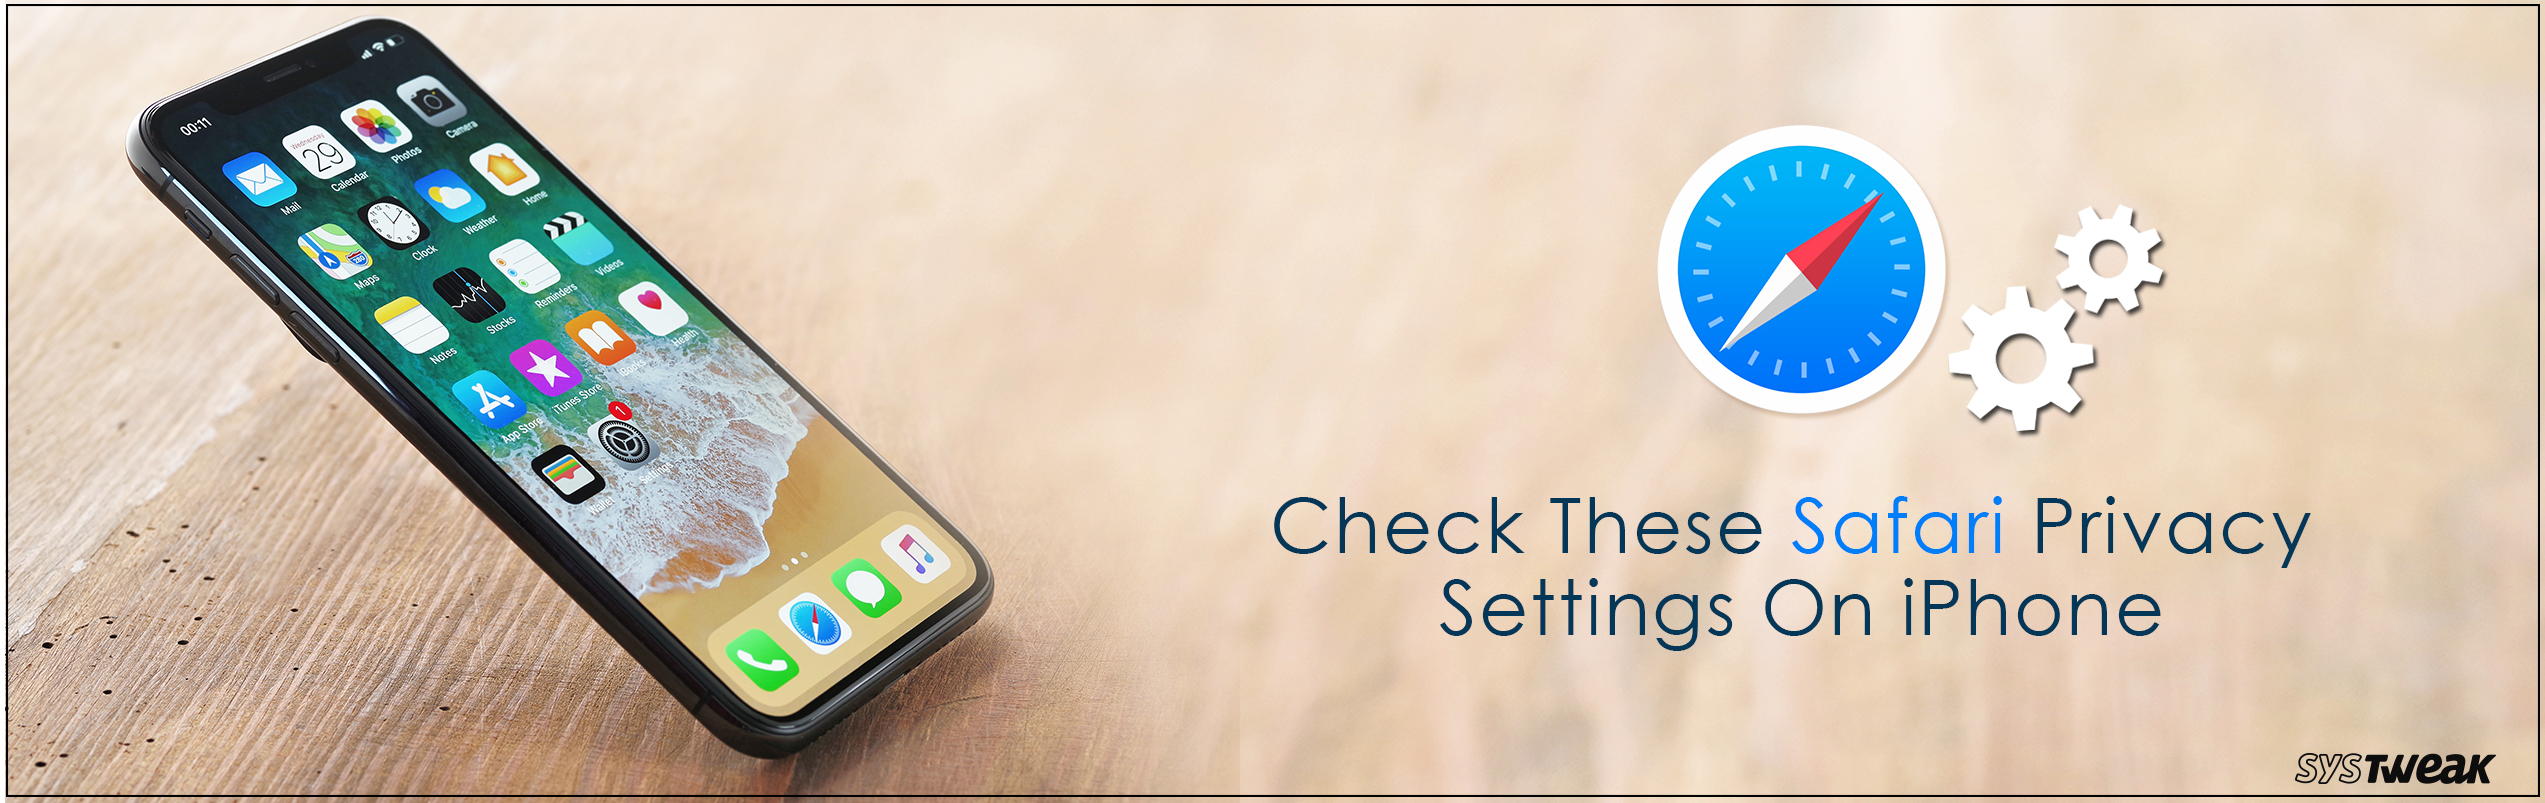 6 Safari Privacy Settings You Must Check On Your iPhone